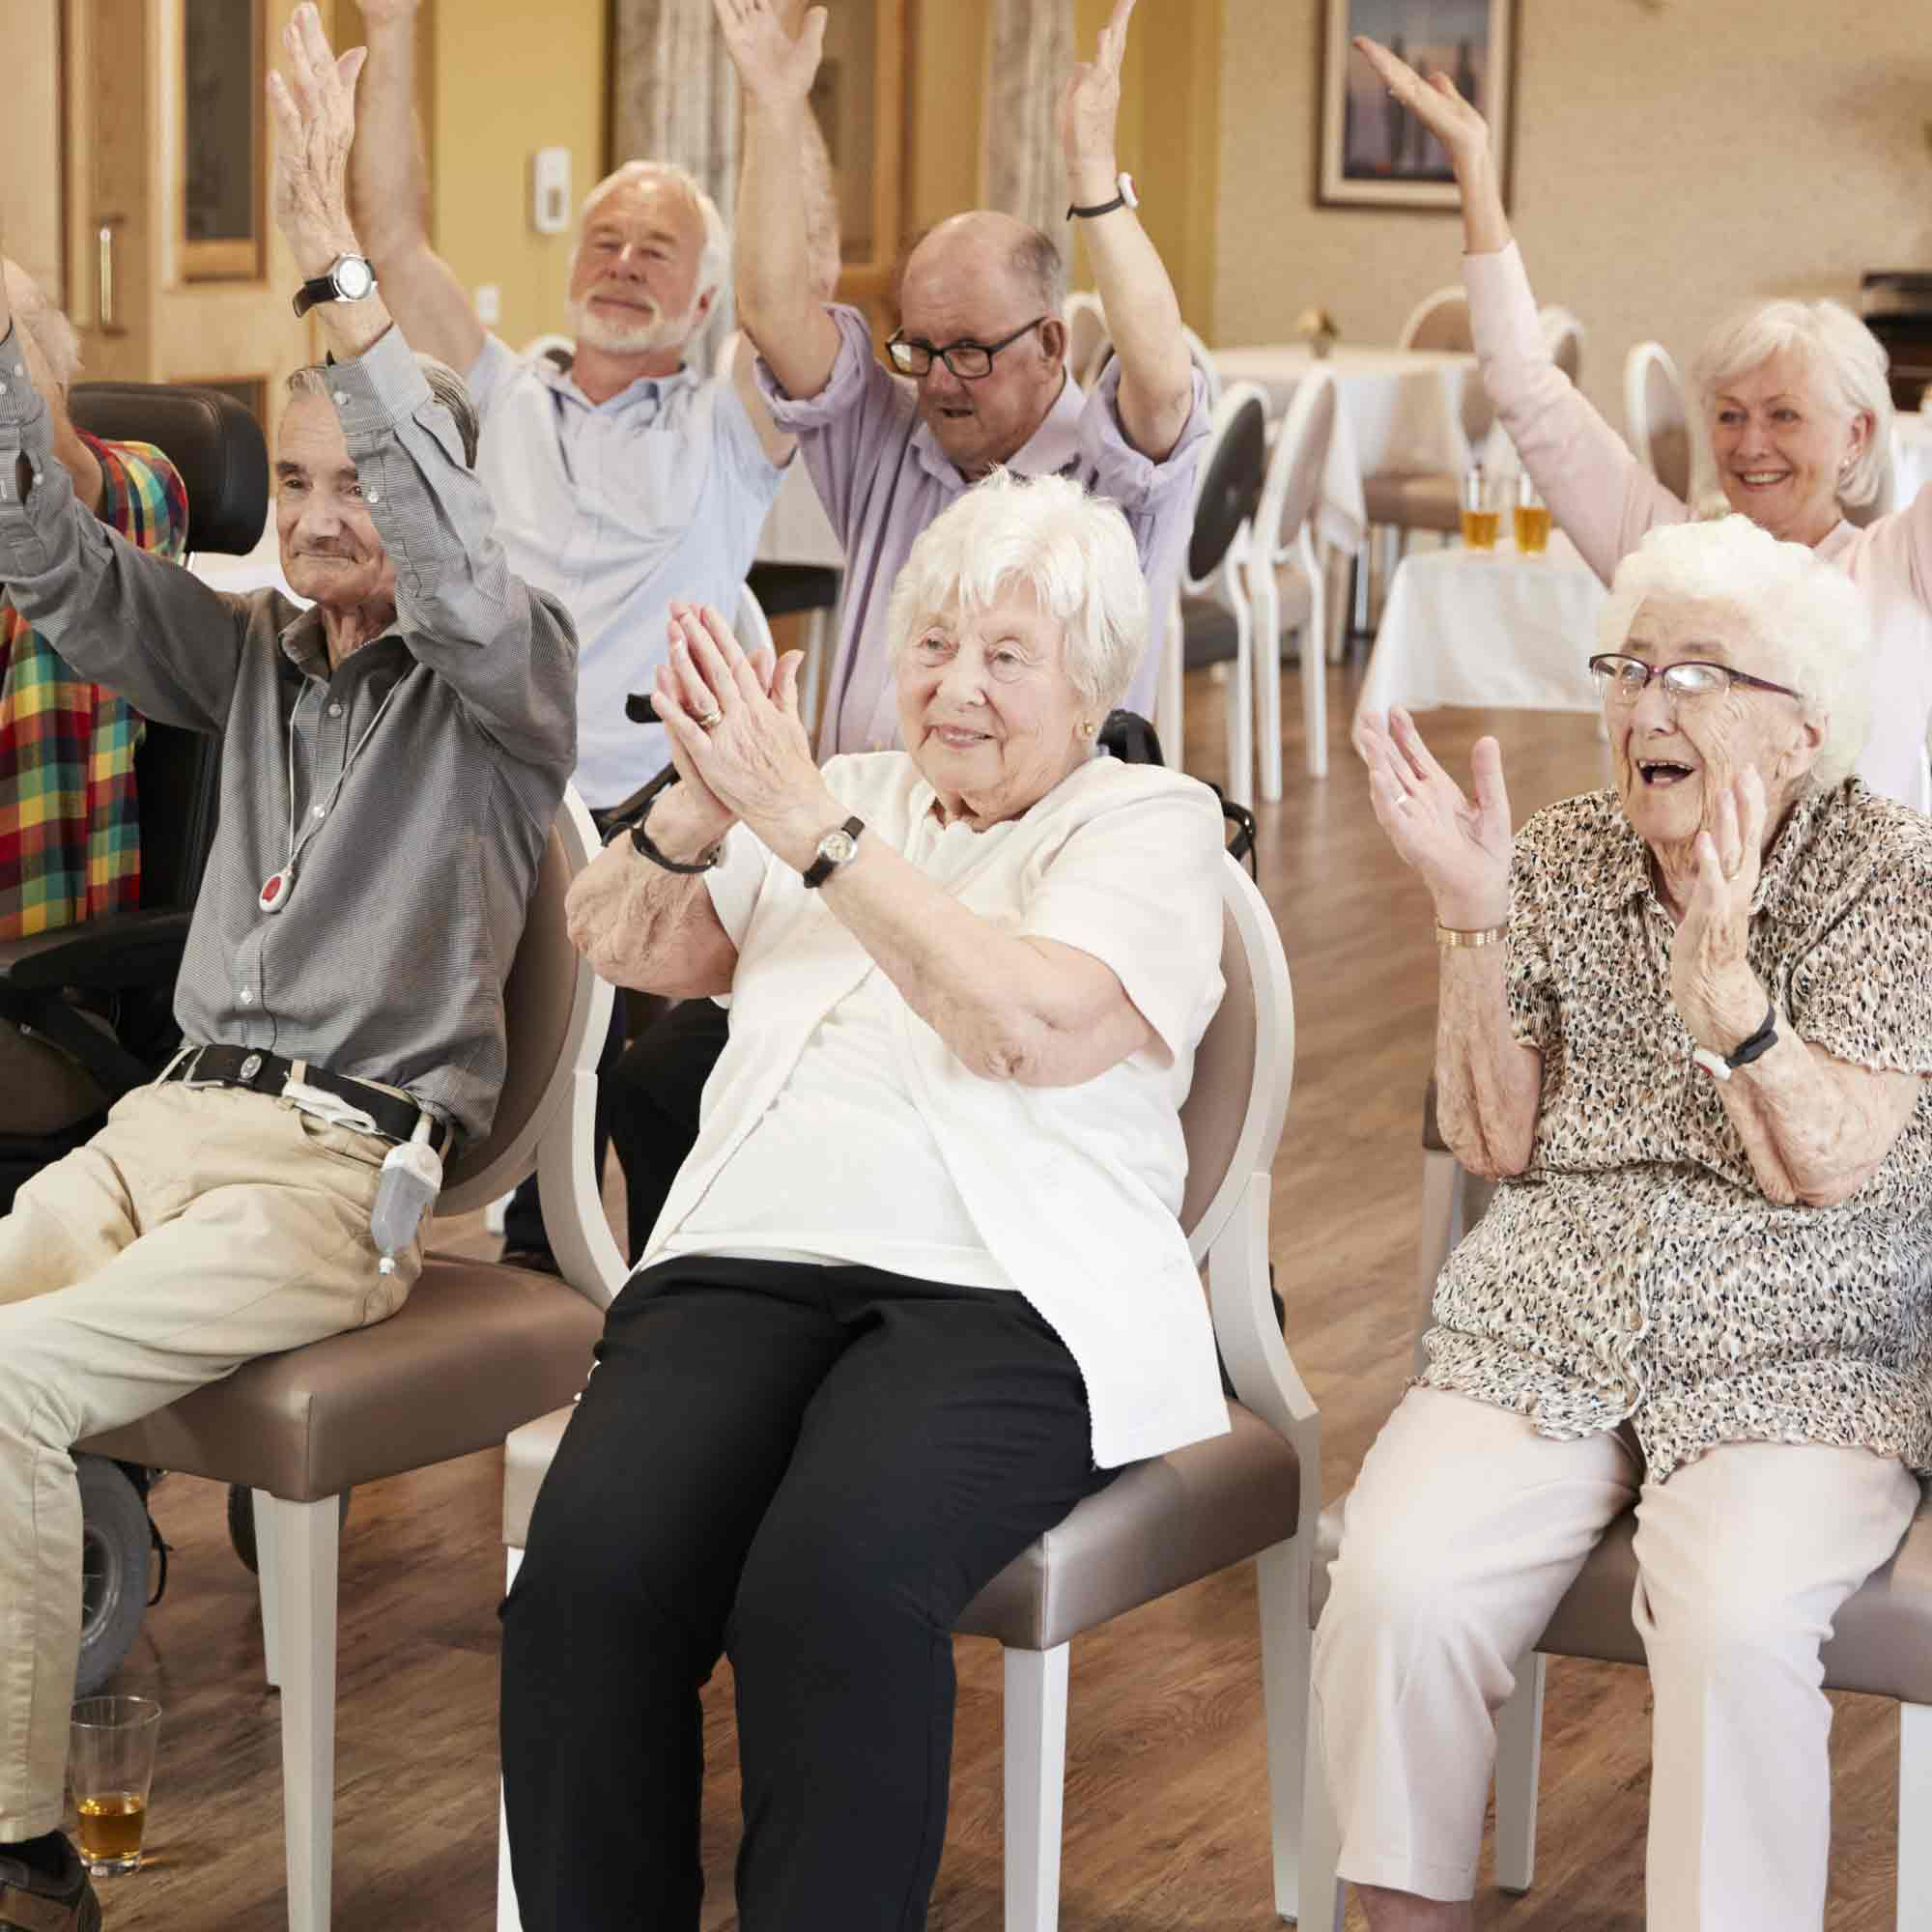 Assisted Living and Memory Care Events Group - The Pinnacle of Oxford